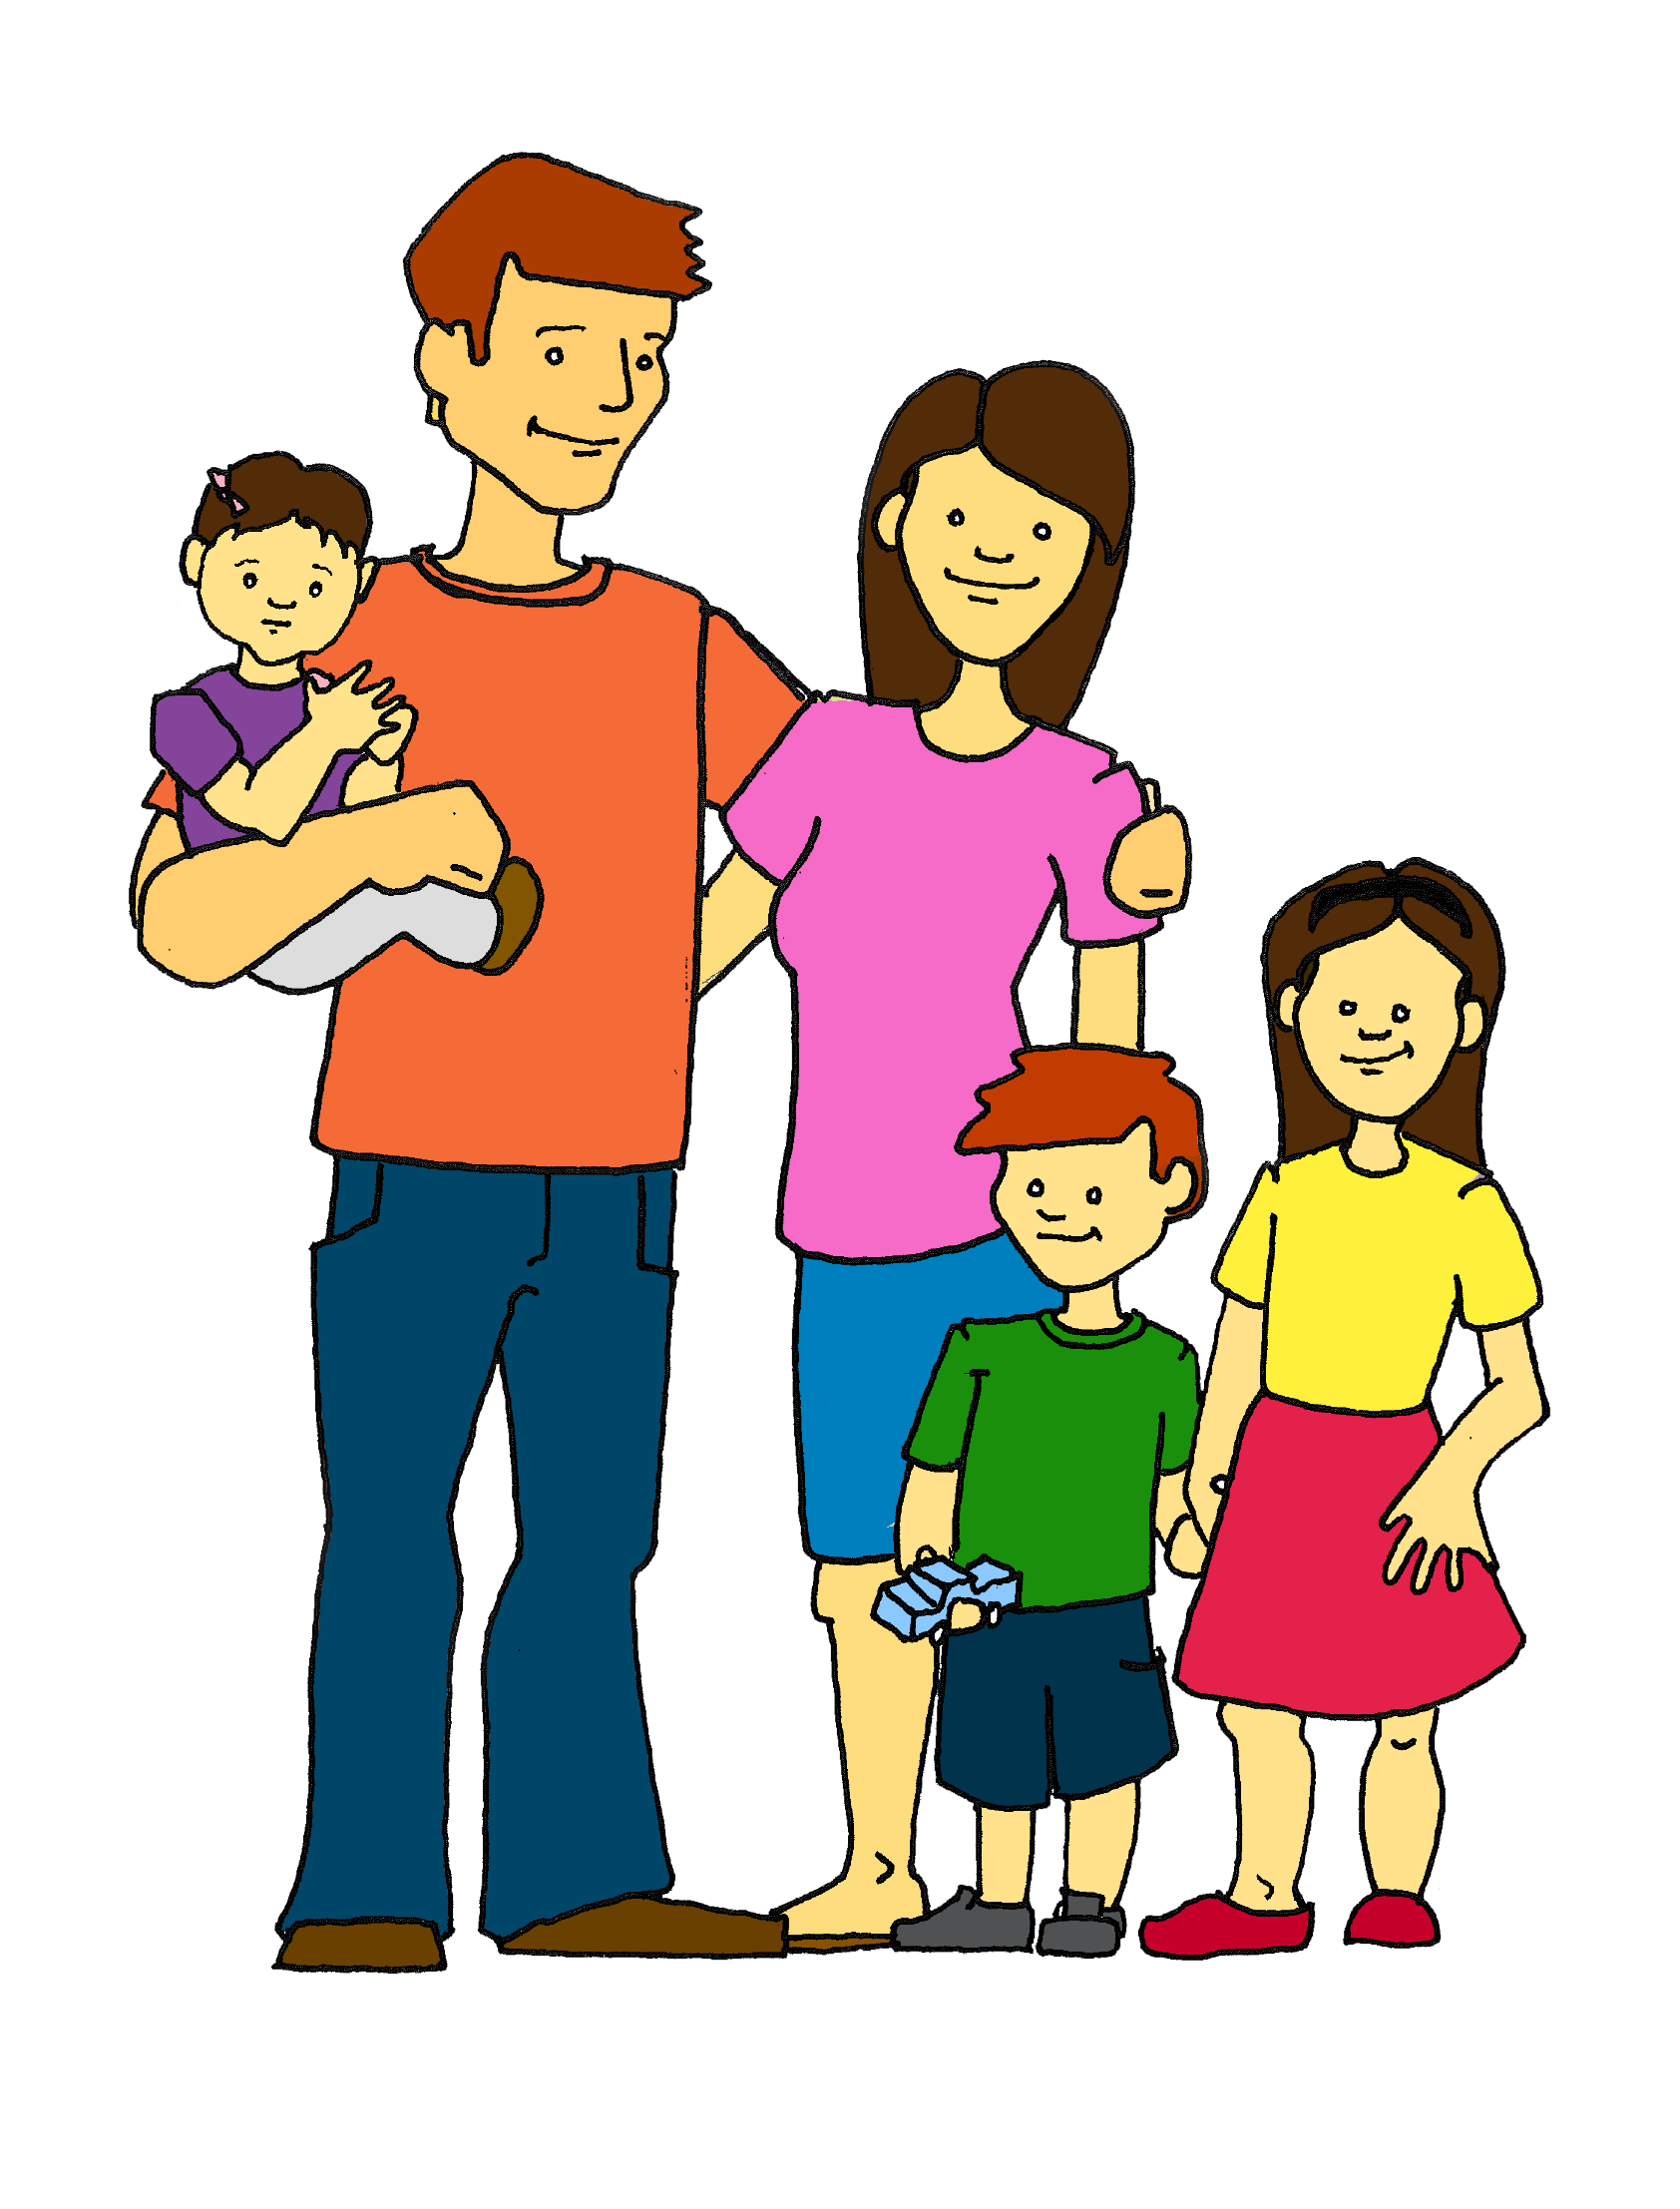 Family clipart cooking. Free image of download